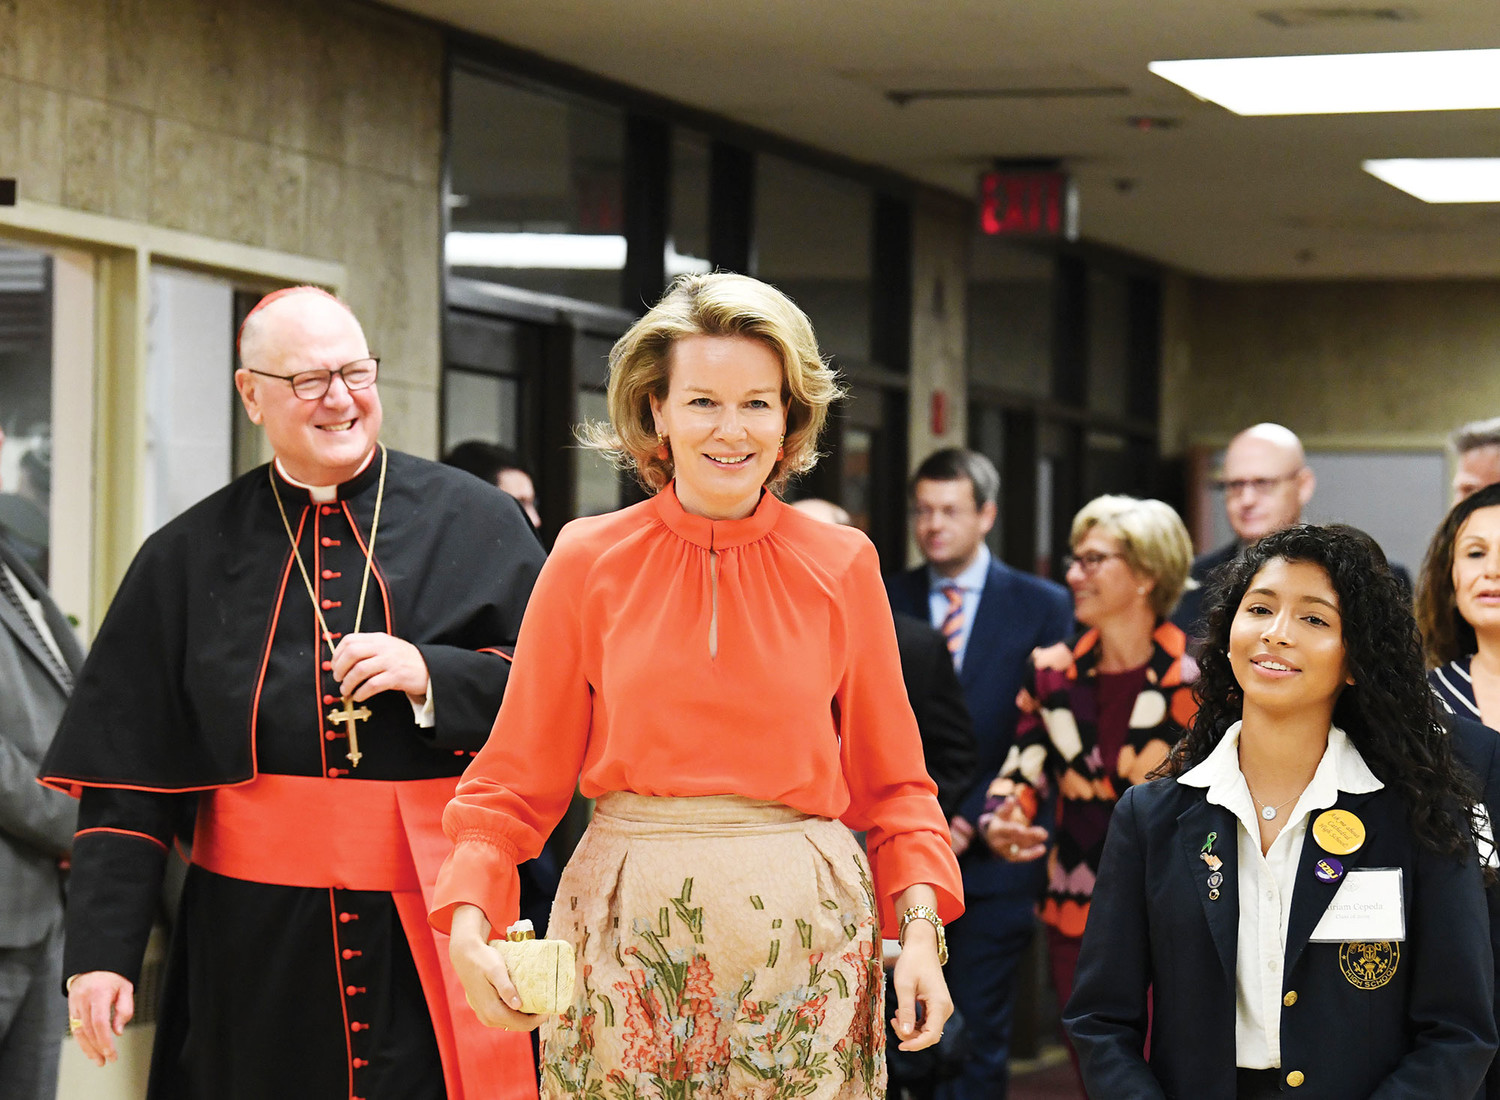 Her Majesty Queen Mathilde of Belgium walks with Cardinal Dolan through the main lobby of Cathedral High School in Manhattan on her way to the gymnasium where she was greeted by the school's 500 students, and teachers and administrators Sept. 25.